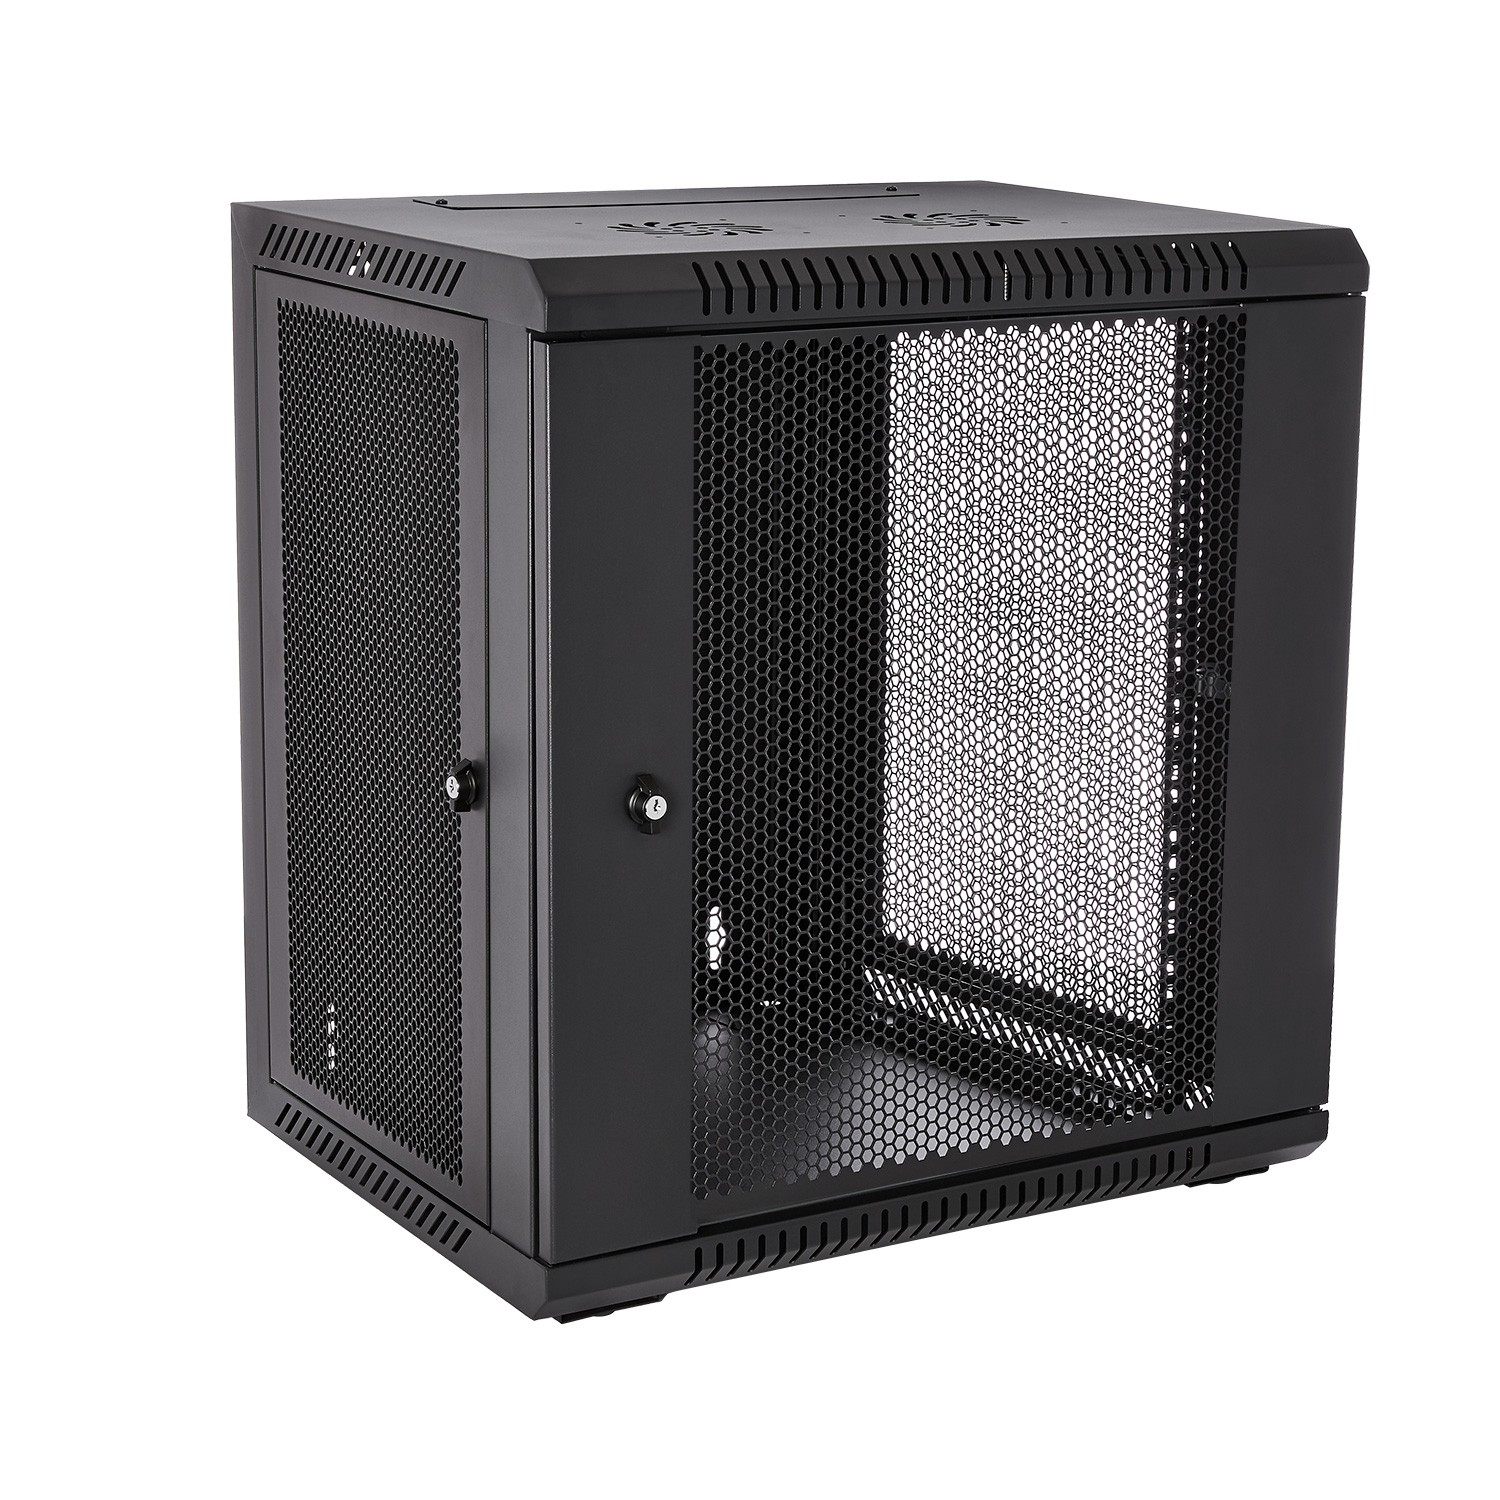 V7 - Racks                       12u Rack Wall Mount Enclosure       Locking Vented Doors 450mm          Rmwc12uv450-1e